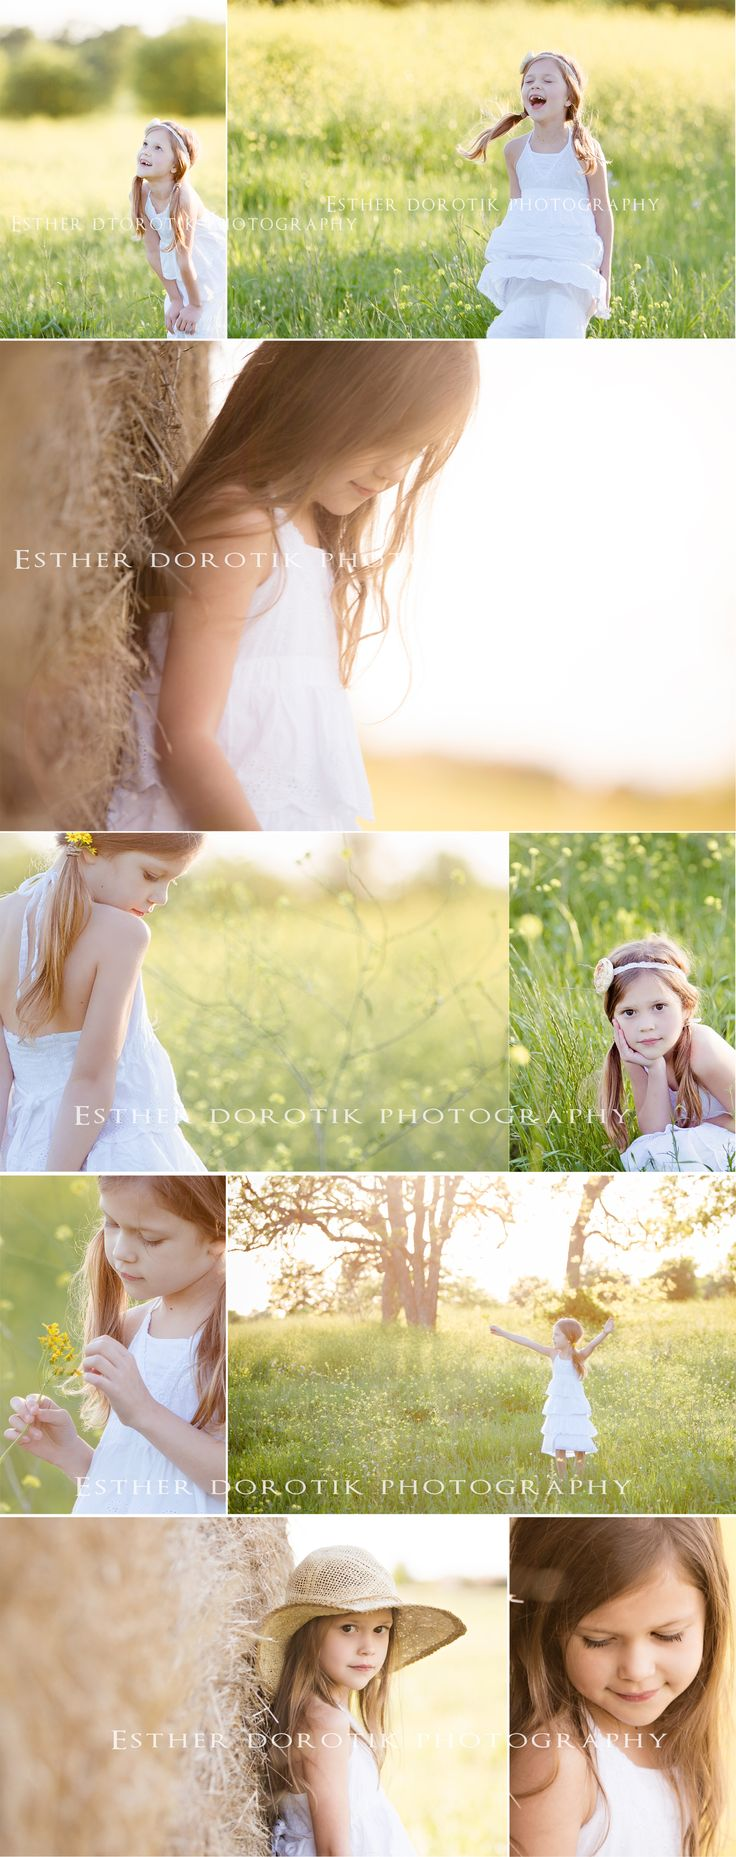 child photography, kid photography, 7 year old girl photography, outdoor photo session, sunset photography, flower field